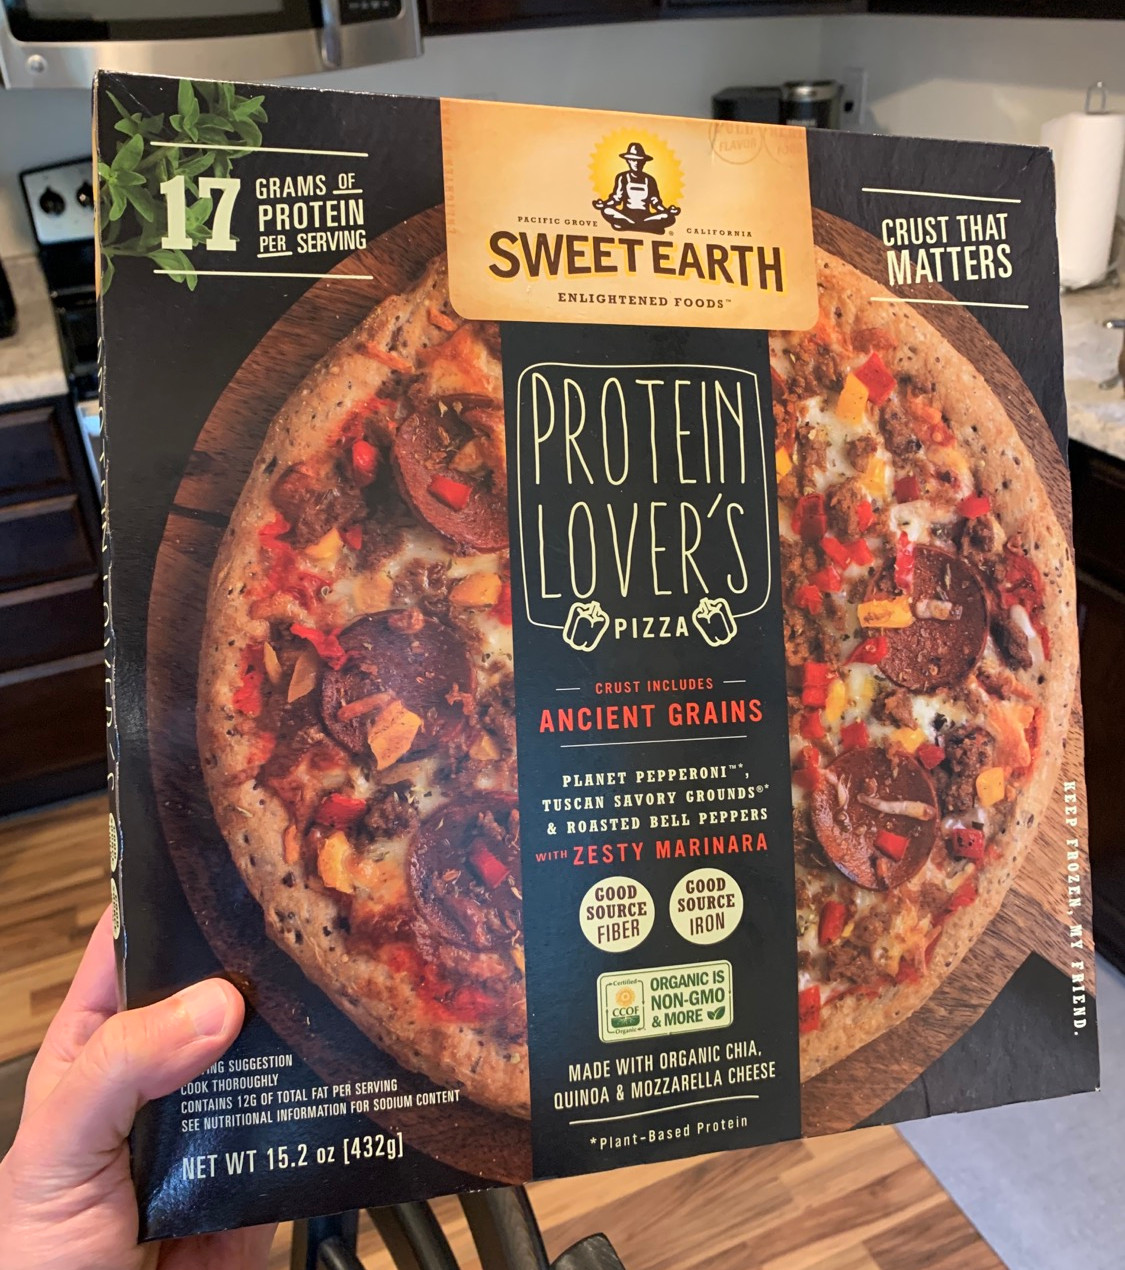 photo of sweet earth protein lover pizza box